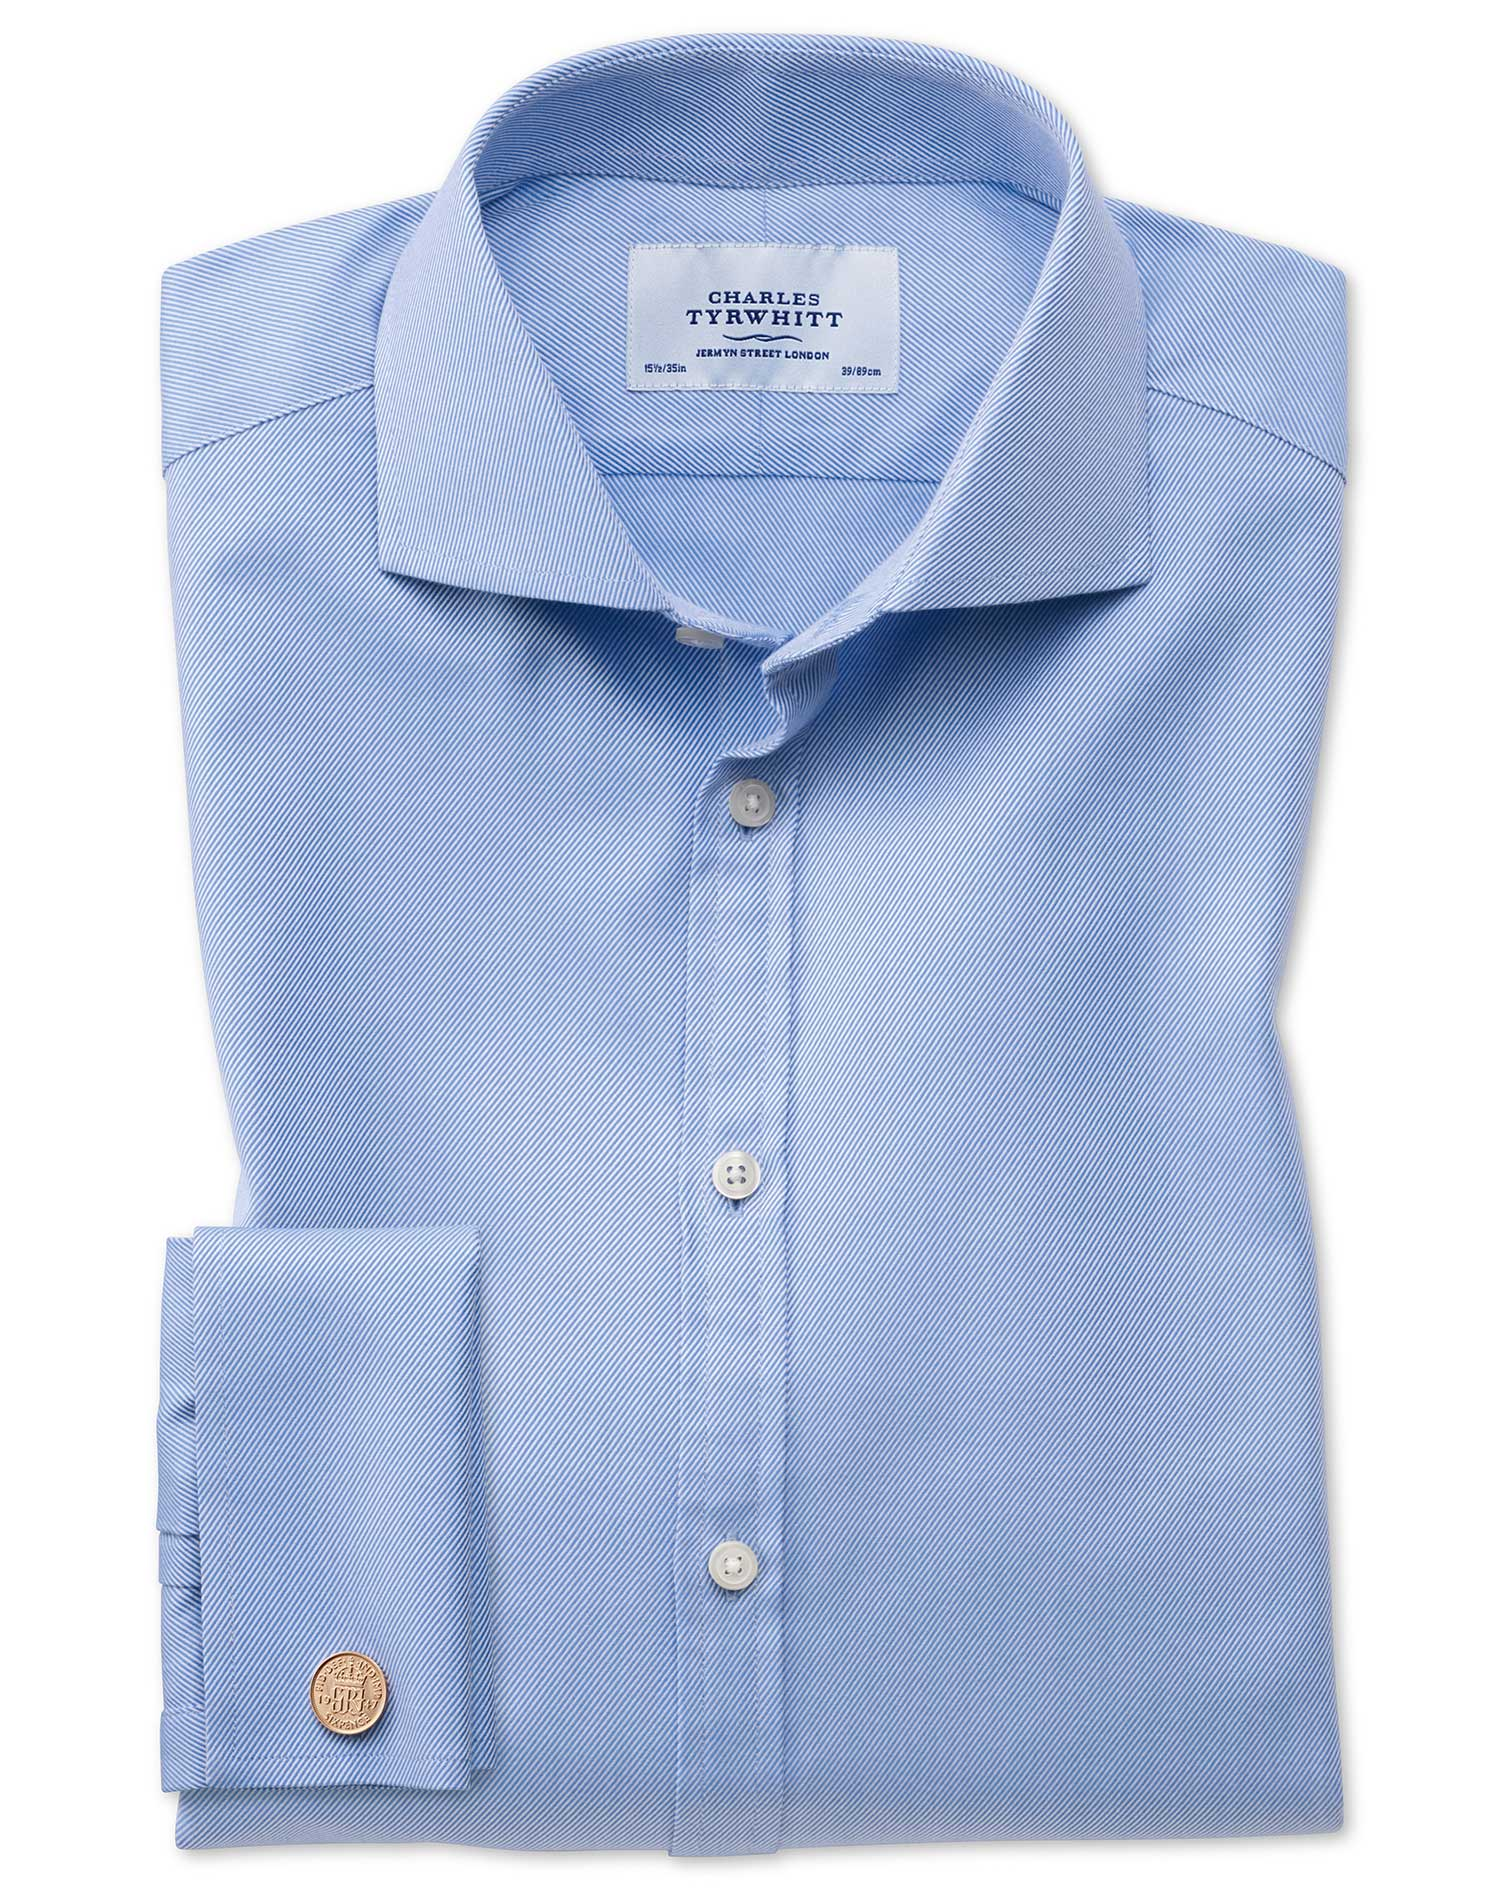 Extra Slim Fit Cutaway Egyptian Cotton Cavalry Twill Blue Formal Shirt Double Cuff Size 16/34 by Cha